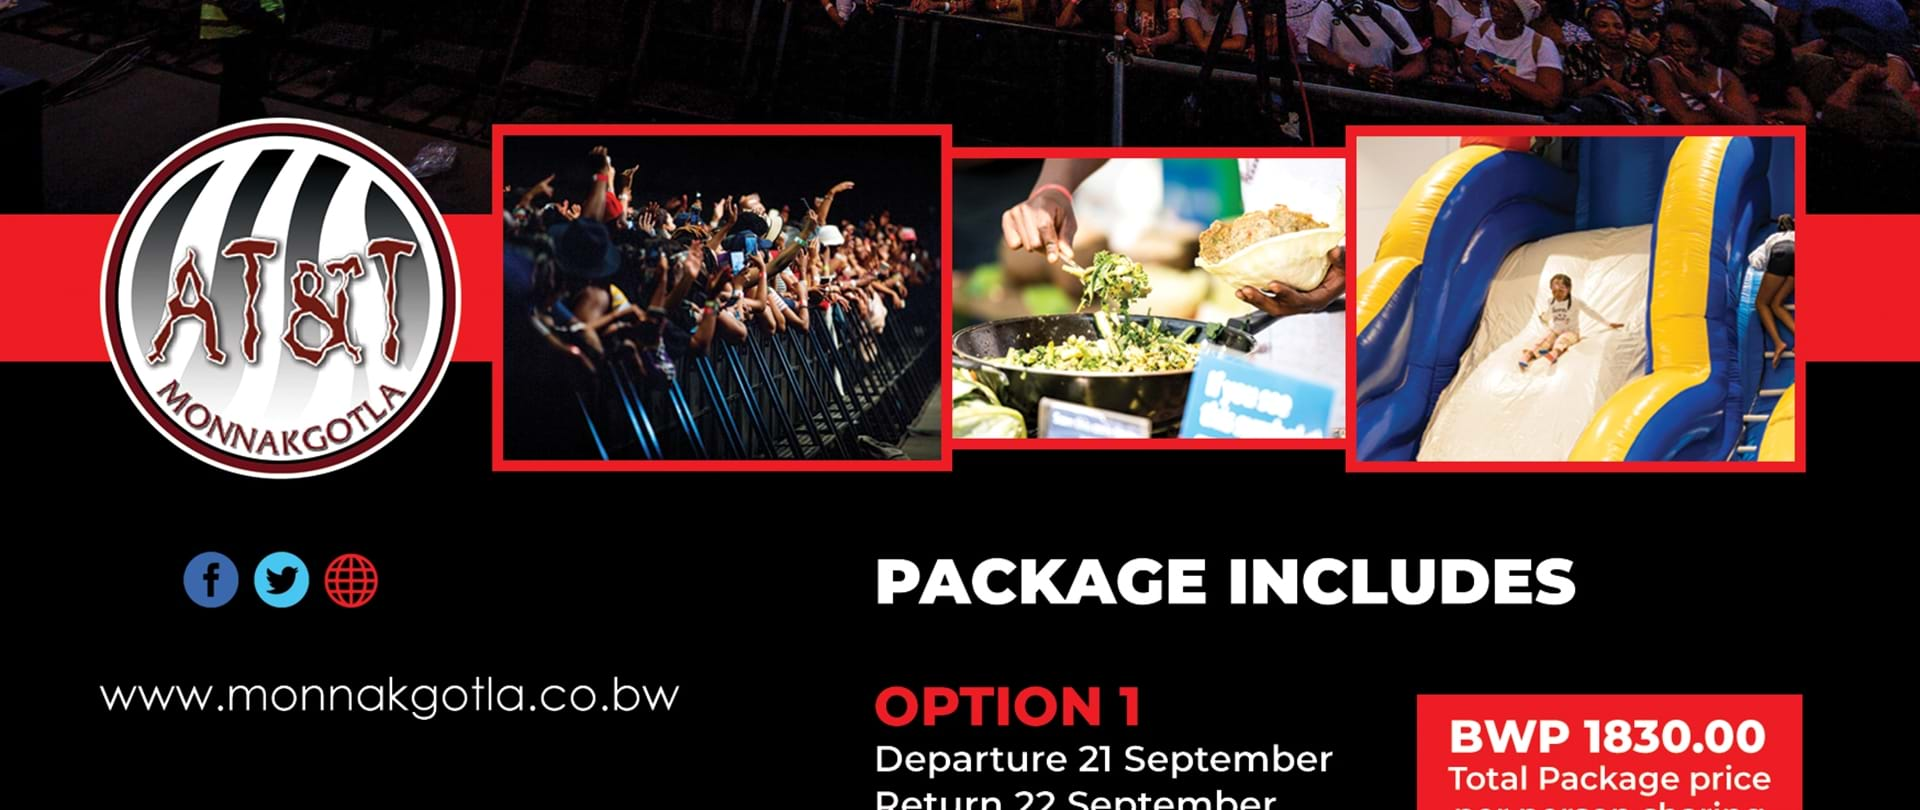 DSTV Delicious 2019 - 1 day package | Gauteng | Bustling